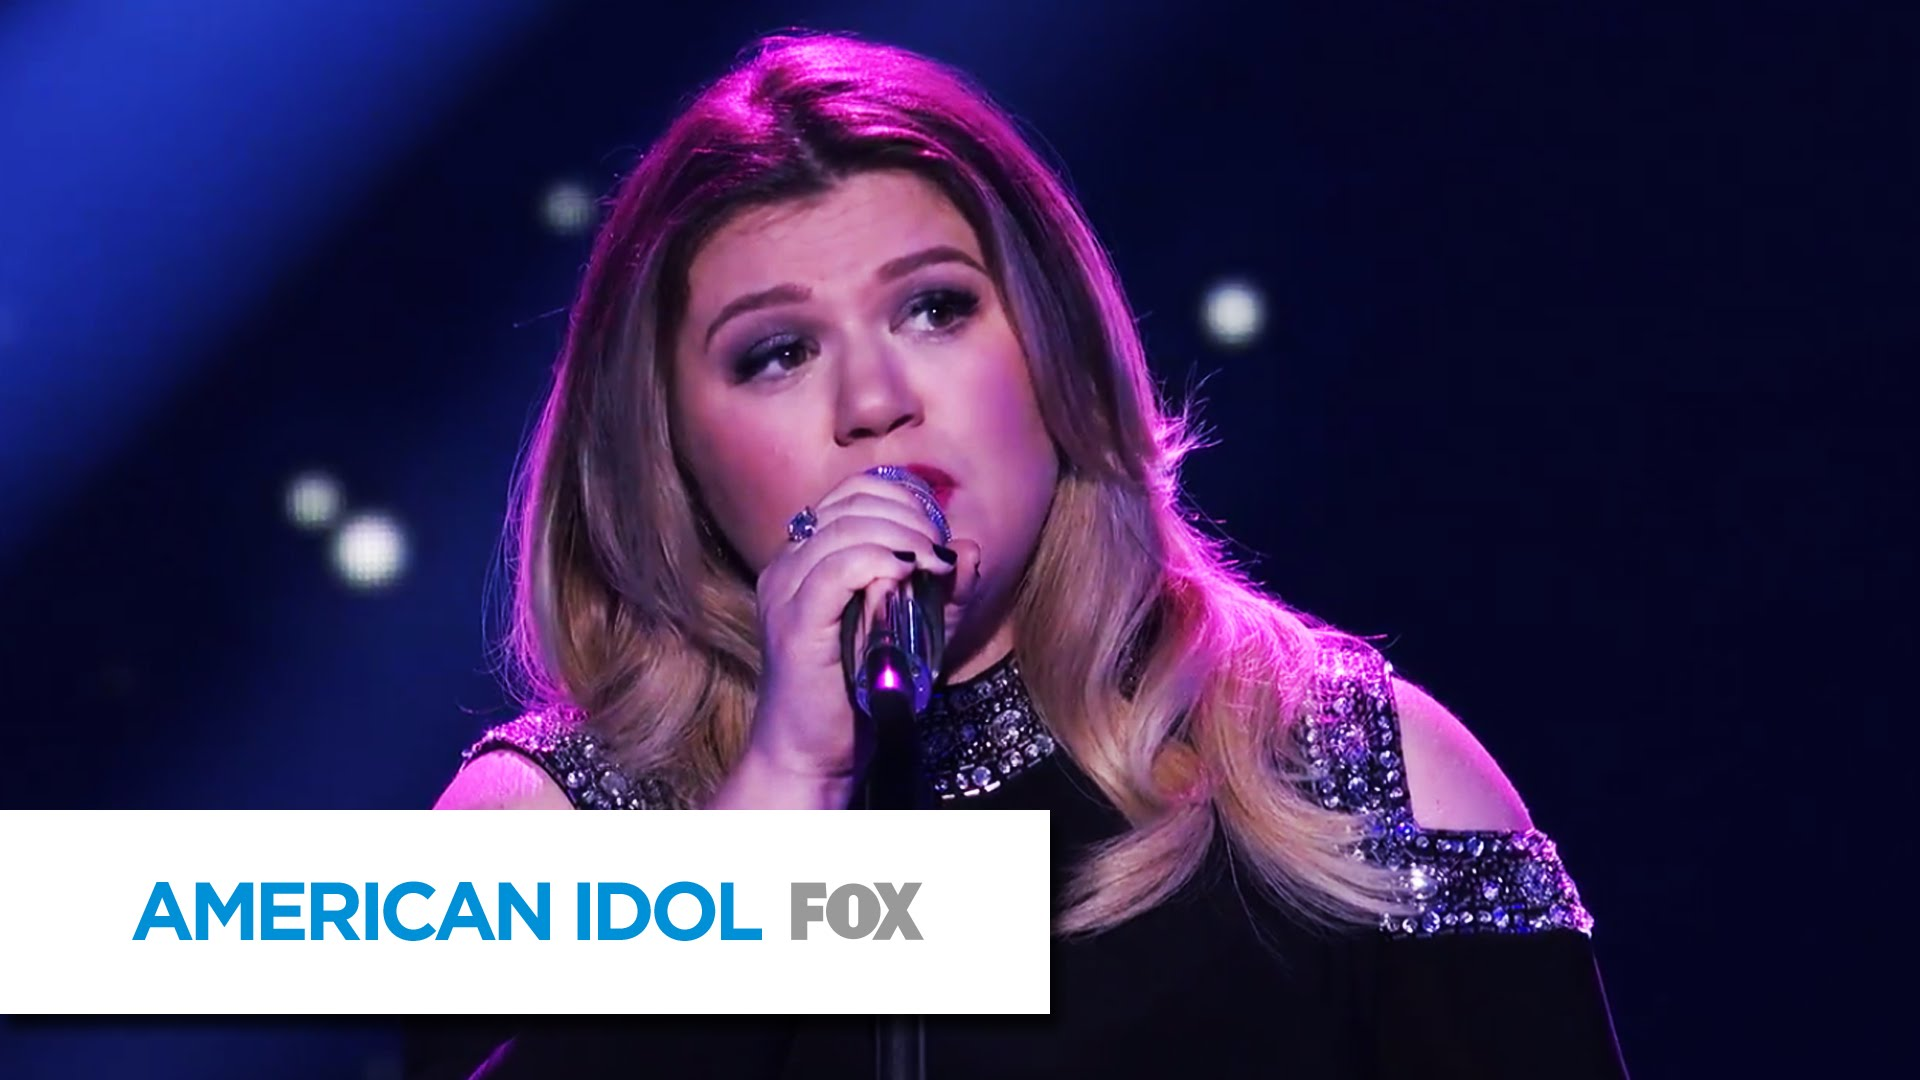 Kelly Clarksons Final American Idol Performance Will Break Your Heart Into a Million Tiny Pieces